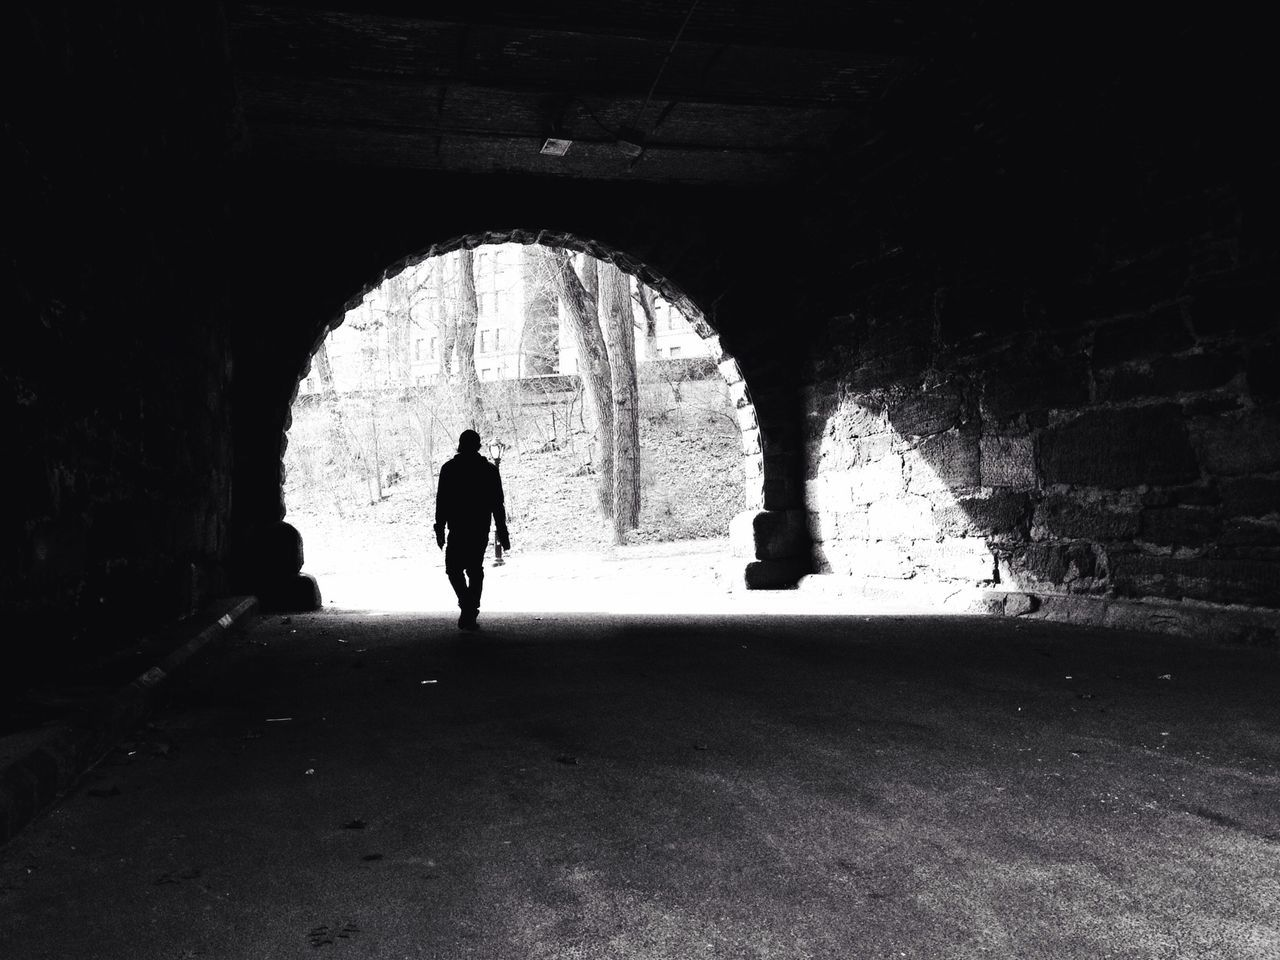 Silhouette Real People Walking Full Length Unrecognizable Person Arch Rear View Built Structure Day Tunnel Architecture Outdoors One Person Black And White